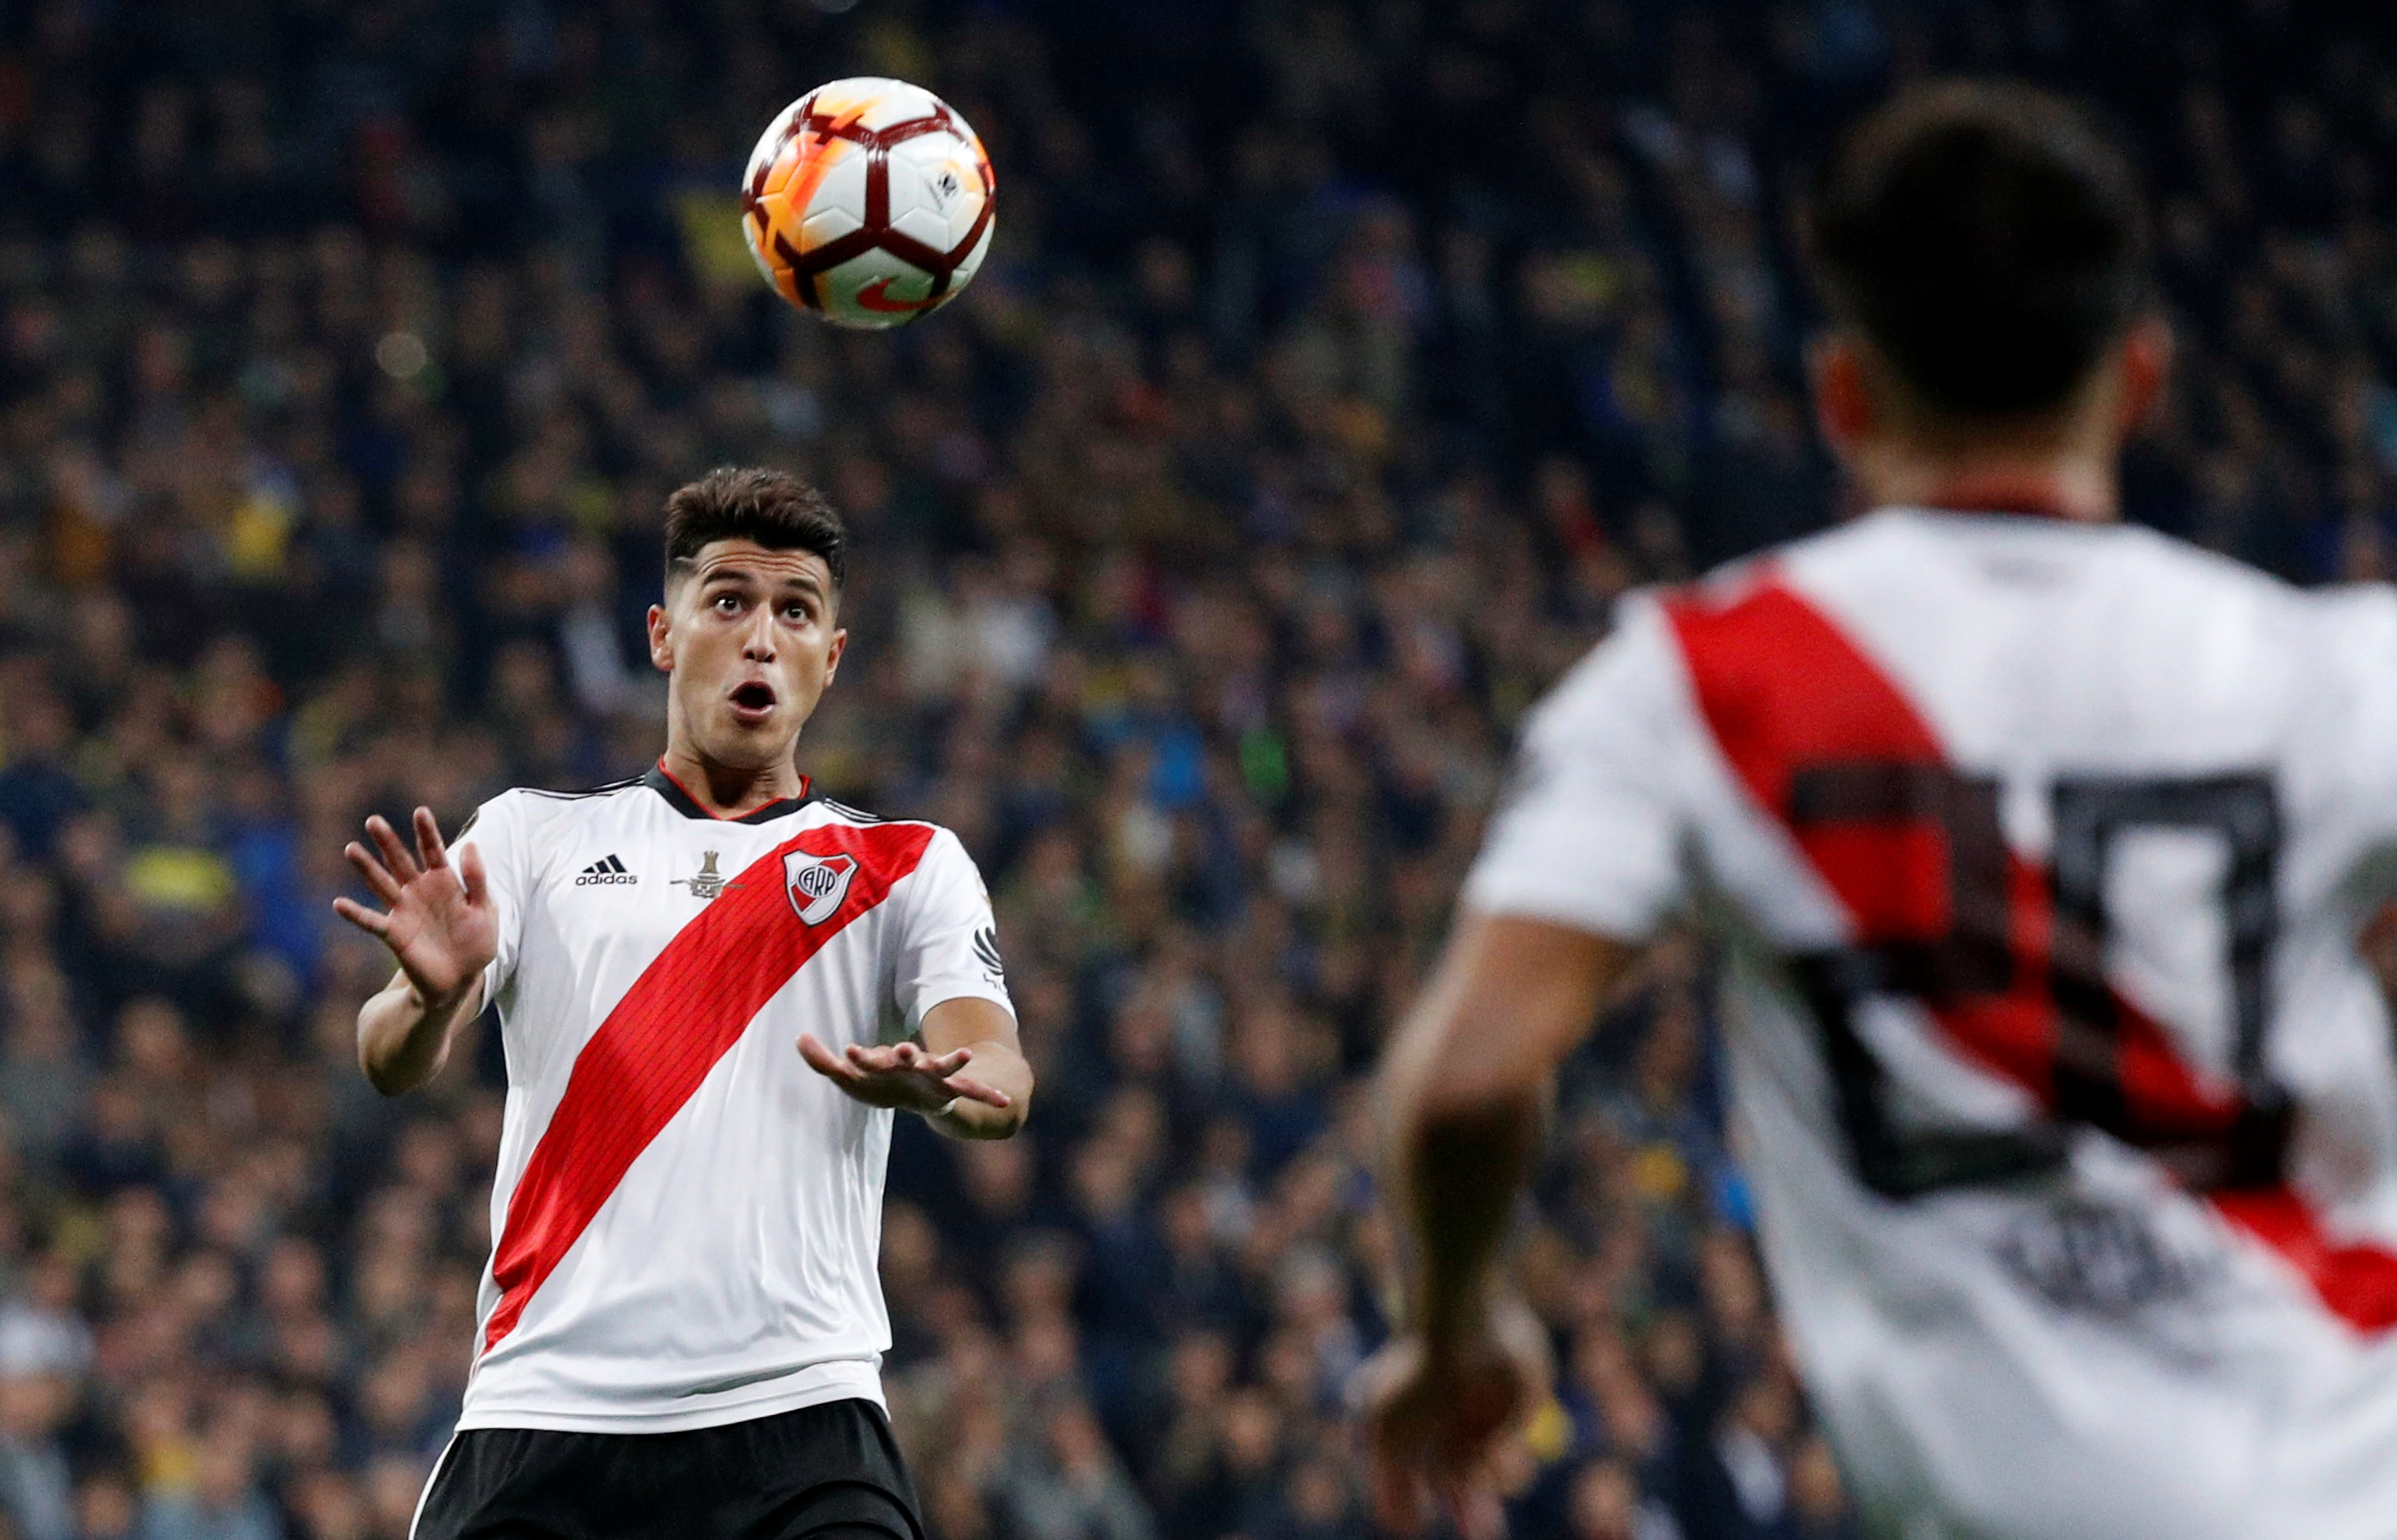 Bayer Leverkusen complete signing of Exequiel Palacios from River Plate